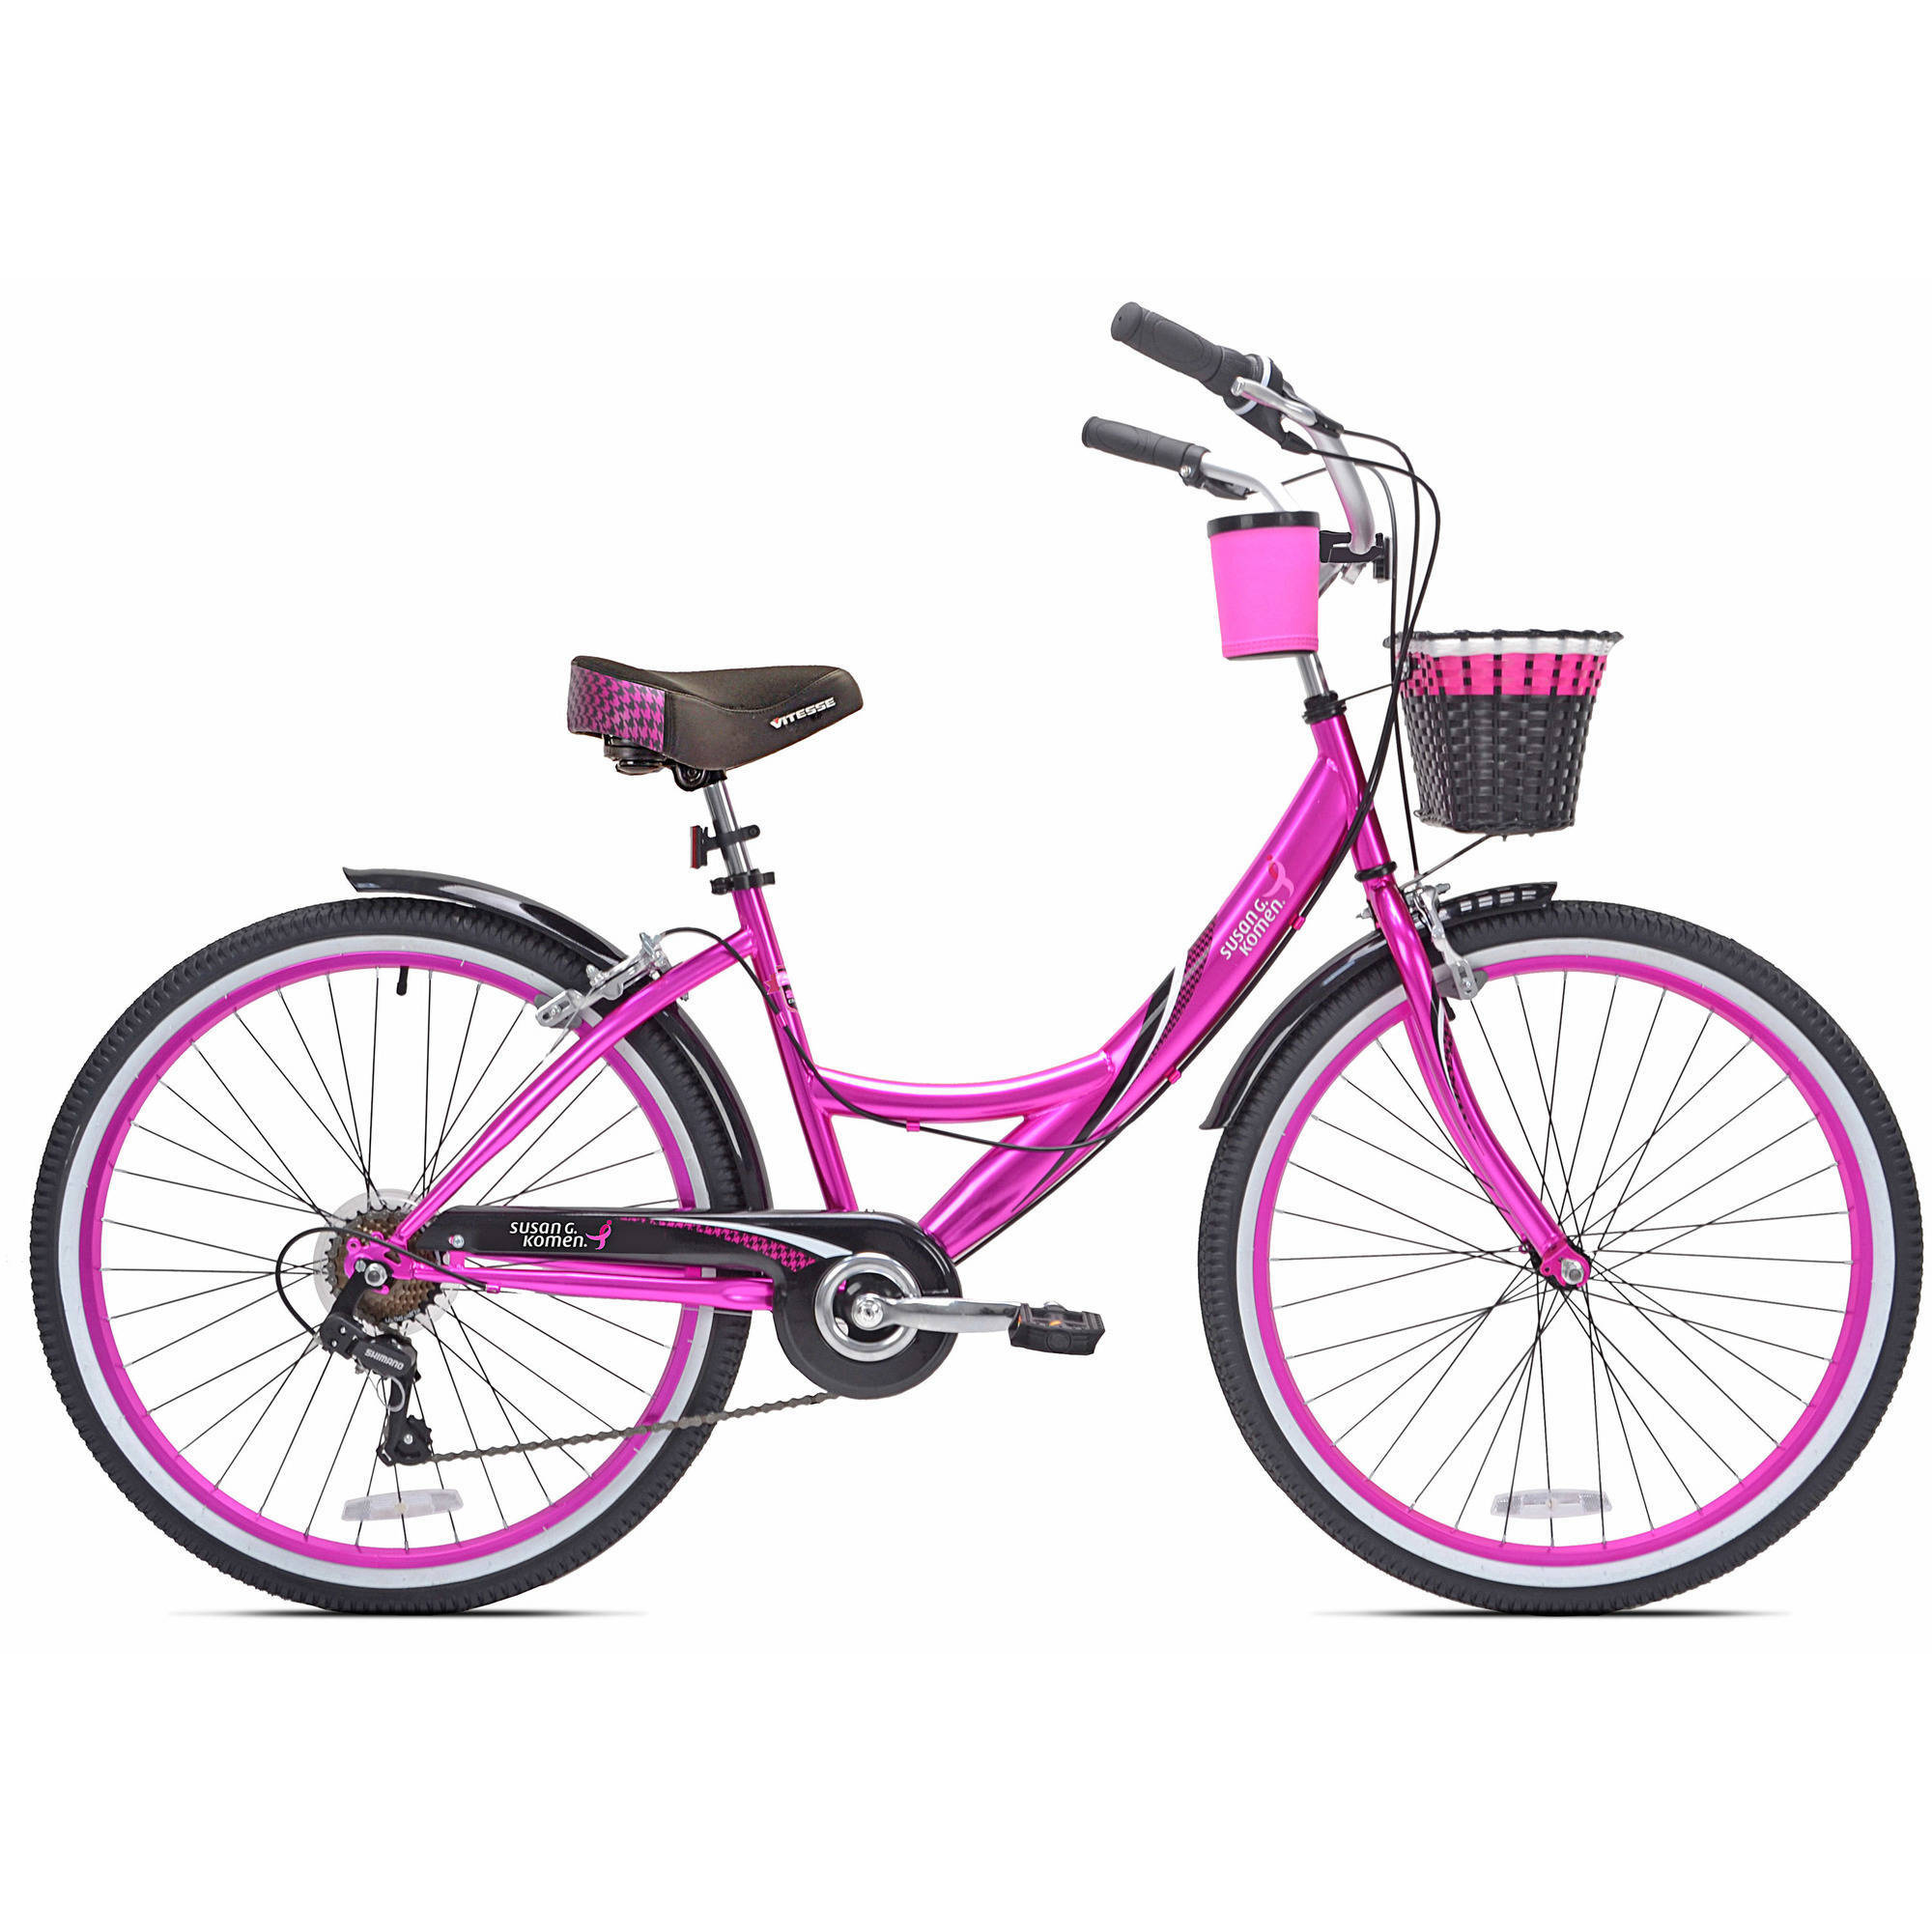 "26"" Susan G Komen Women's Cruiser Bike"